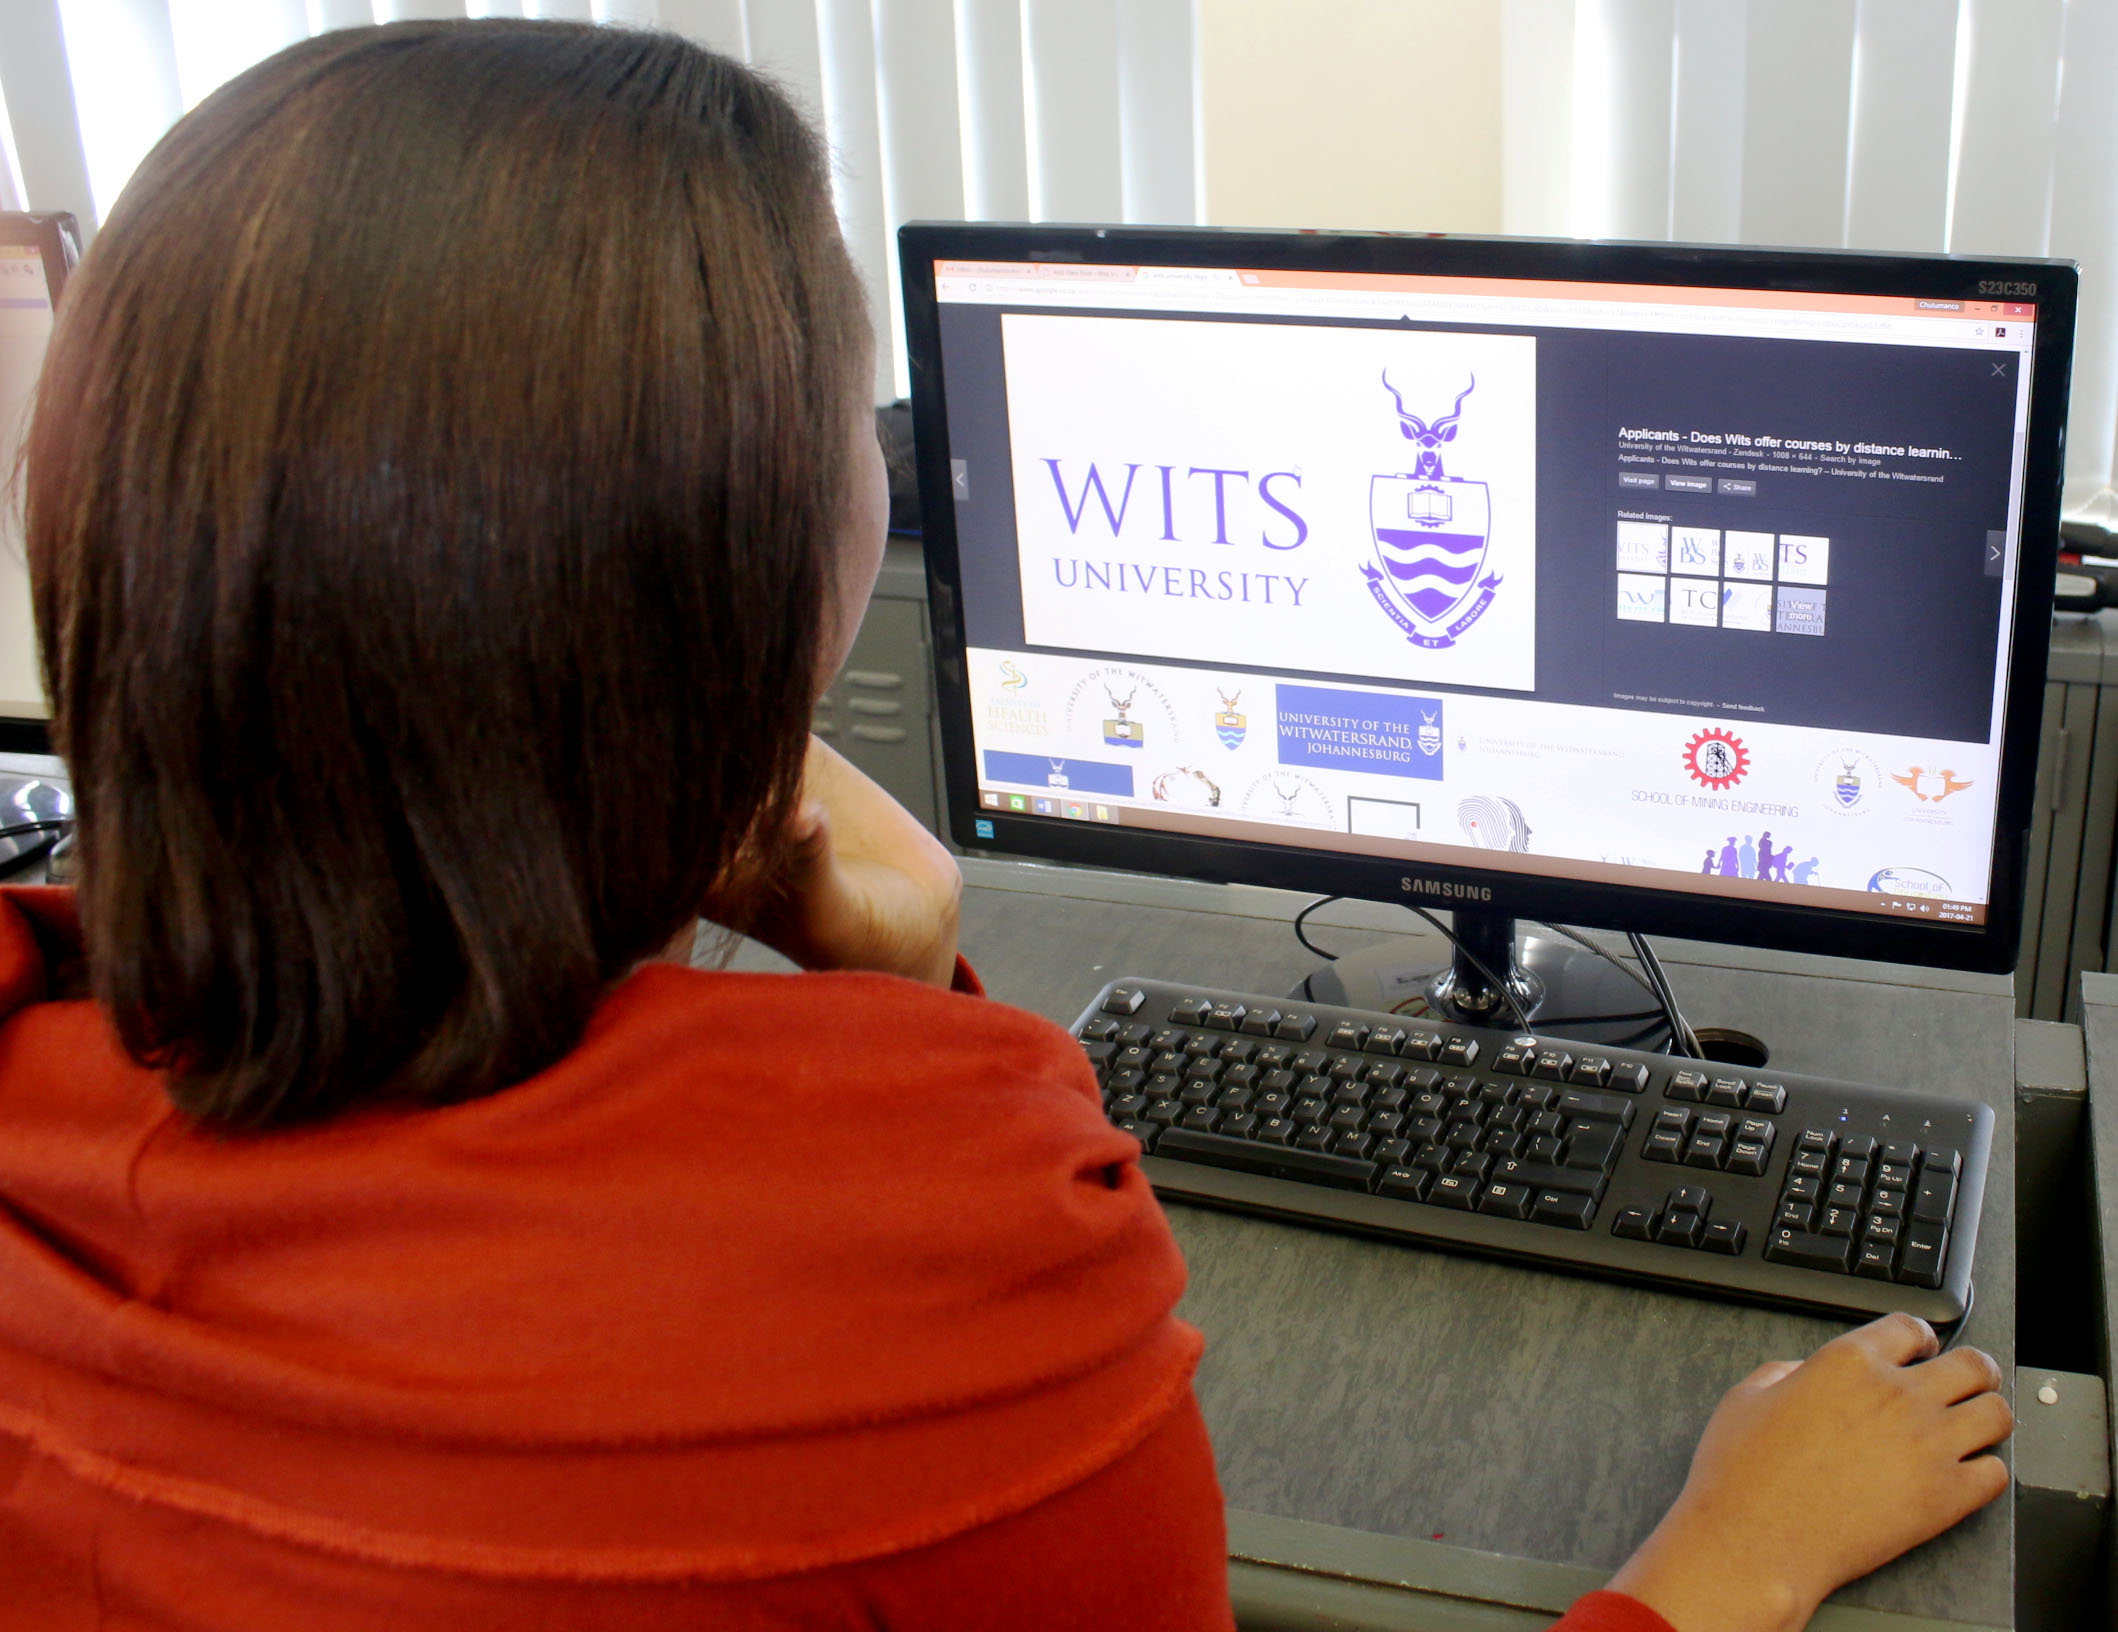 Paper still possible in Wits applications process